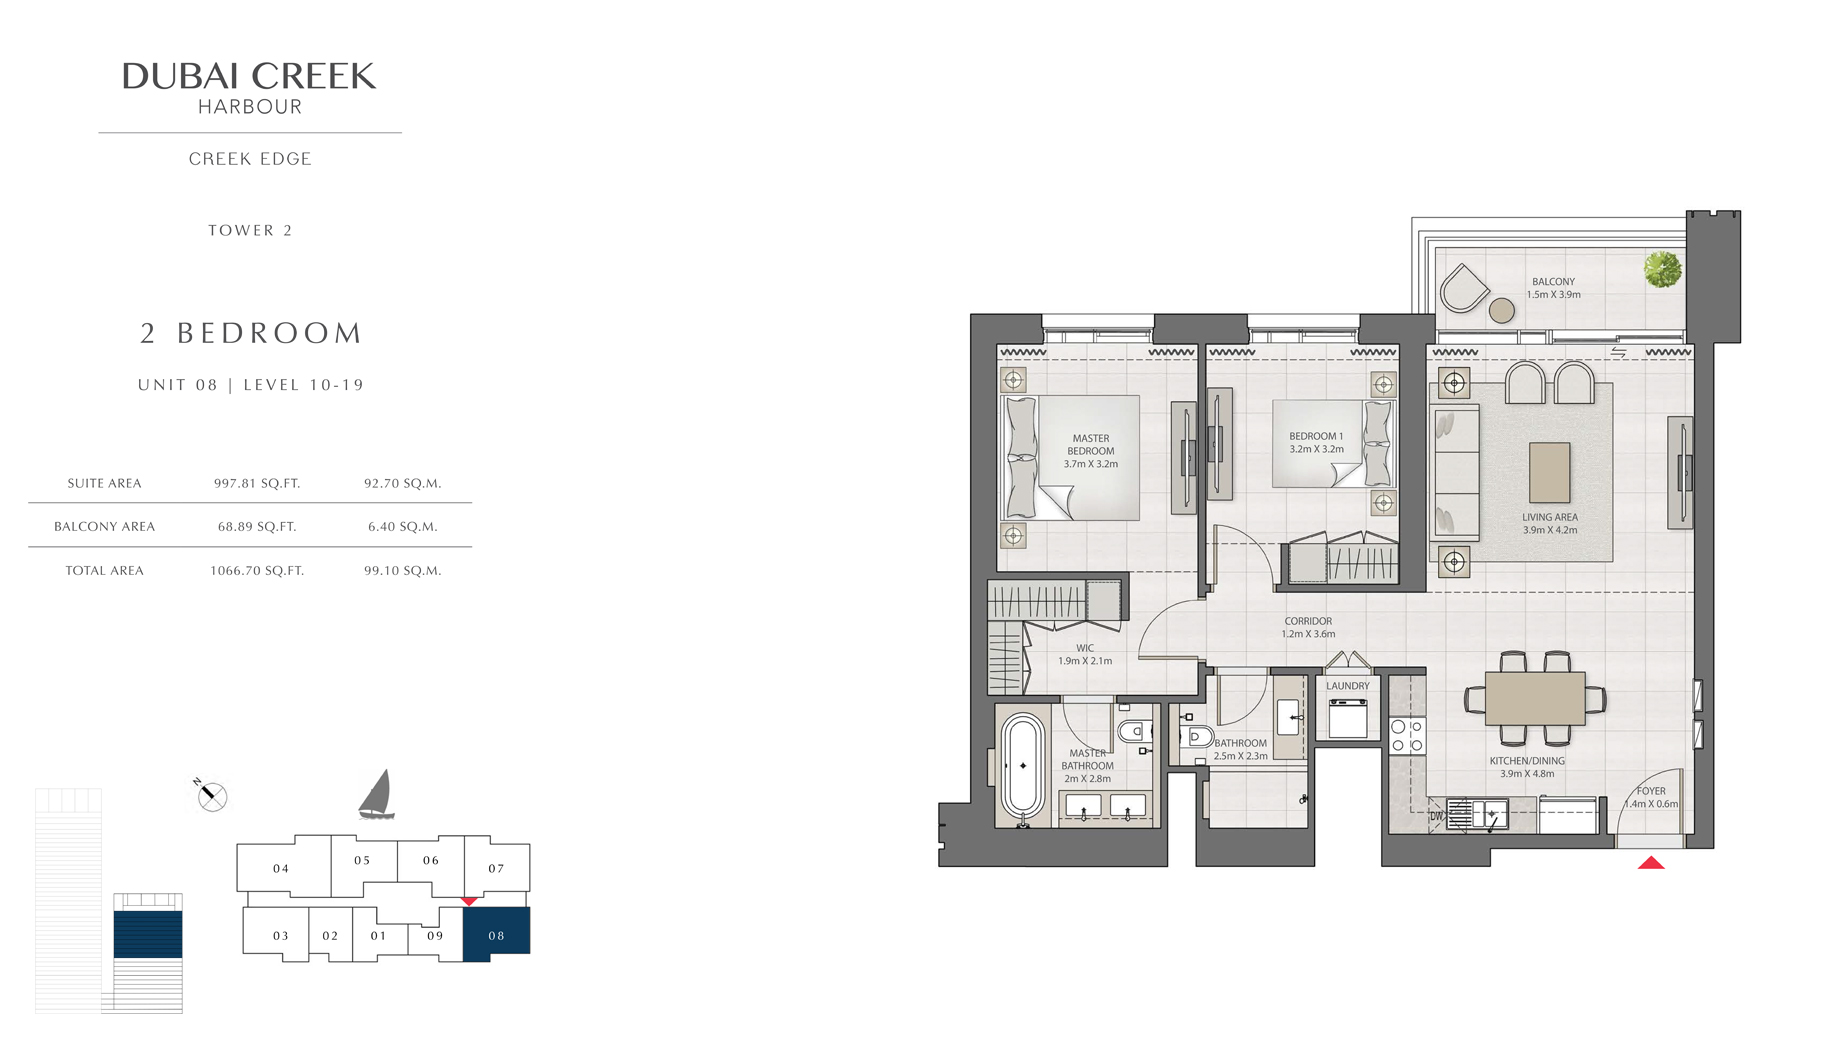 2 Bedroom Tower 2 Unit 08 Level 10-19 Size 1066 sq.ft